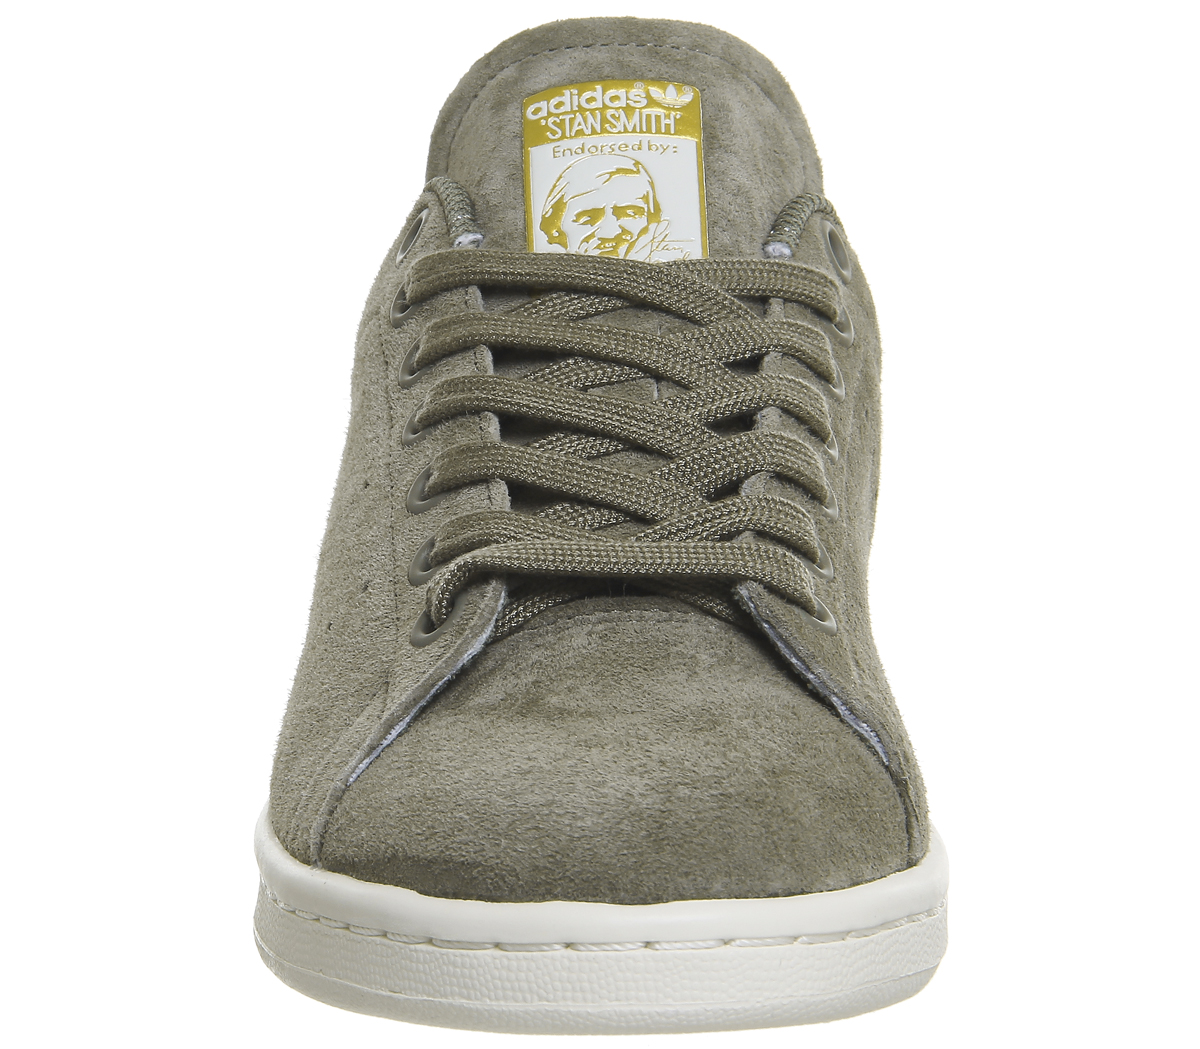 96e26ddf65f56 Sentinel Mens Adidas Stan Smith Trainers TRACE CARGO CREAM Trainers Shoes